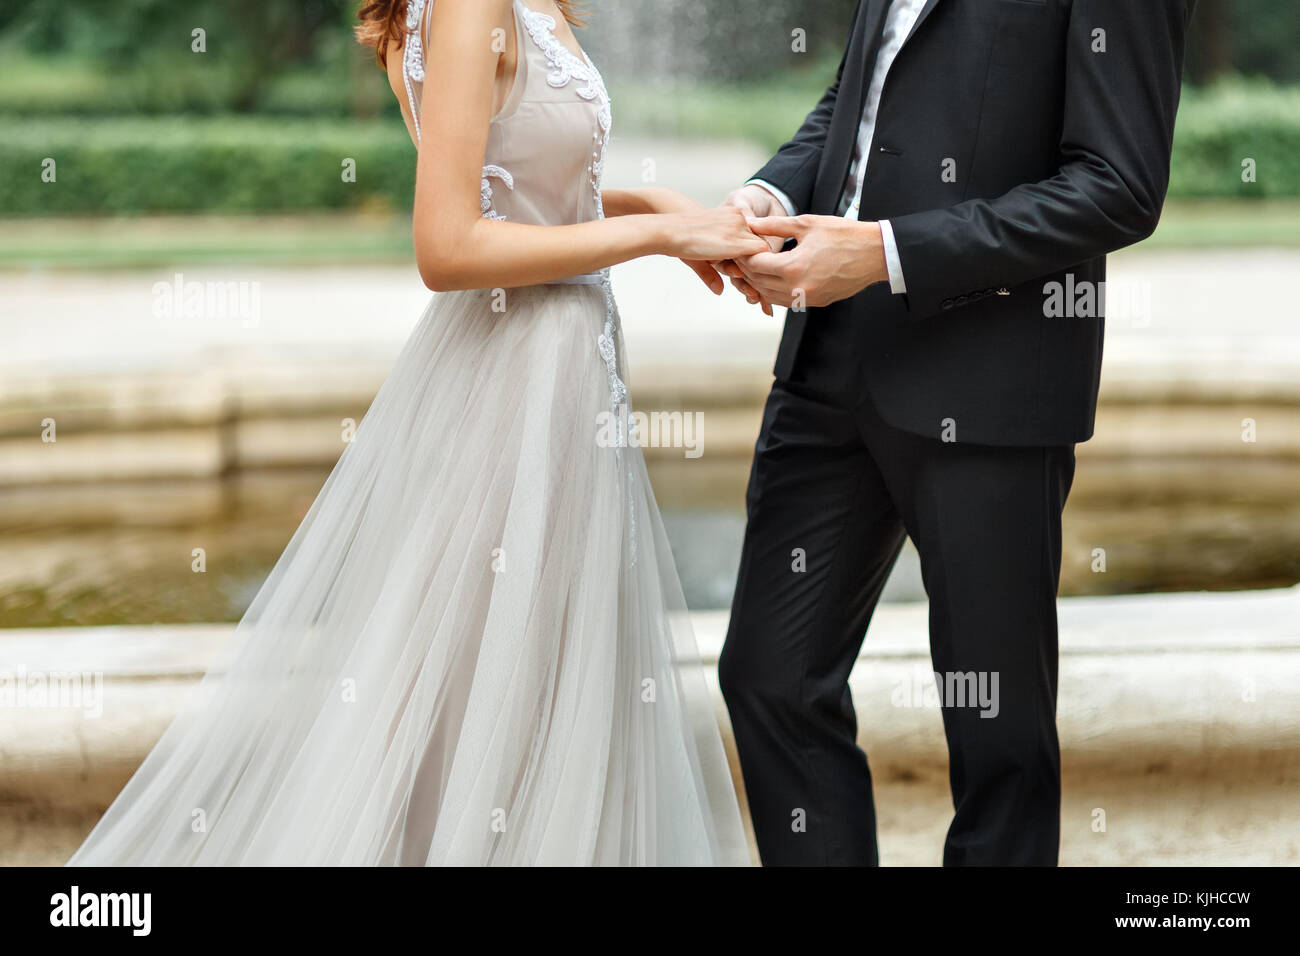 the hands of the newlyweds - Stock Image